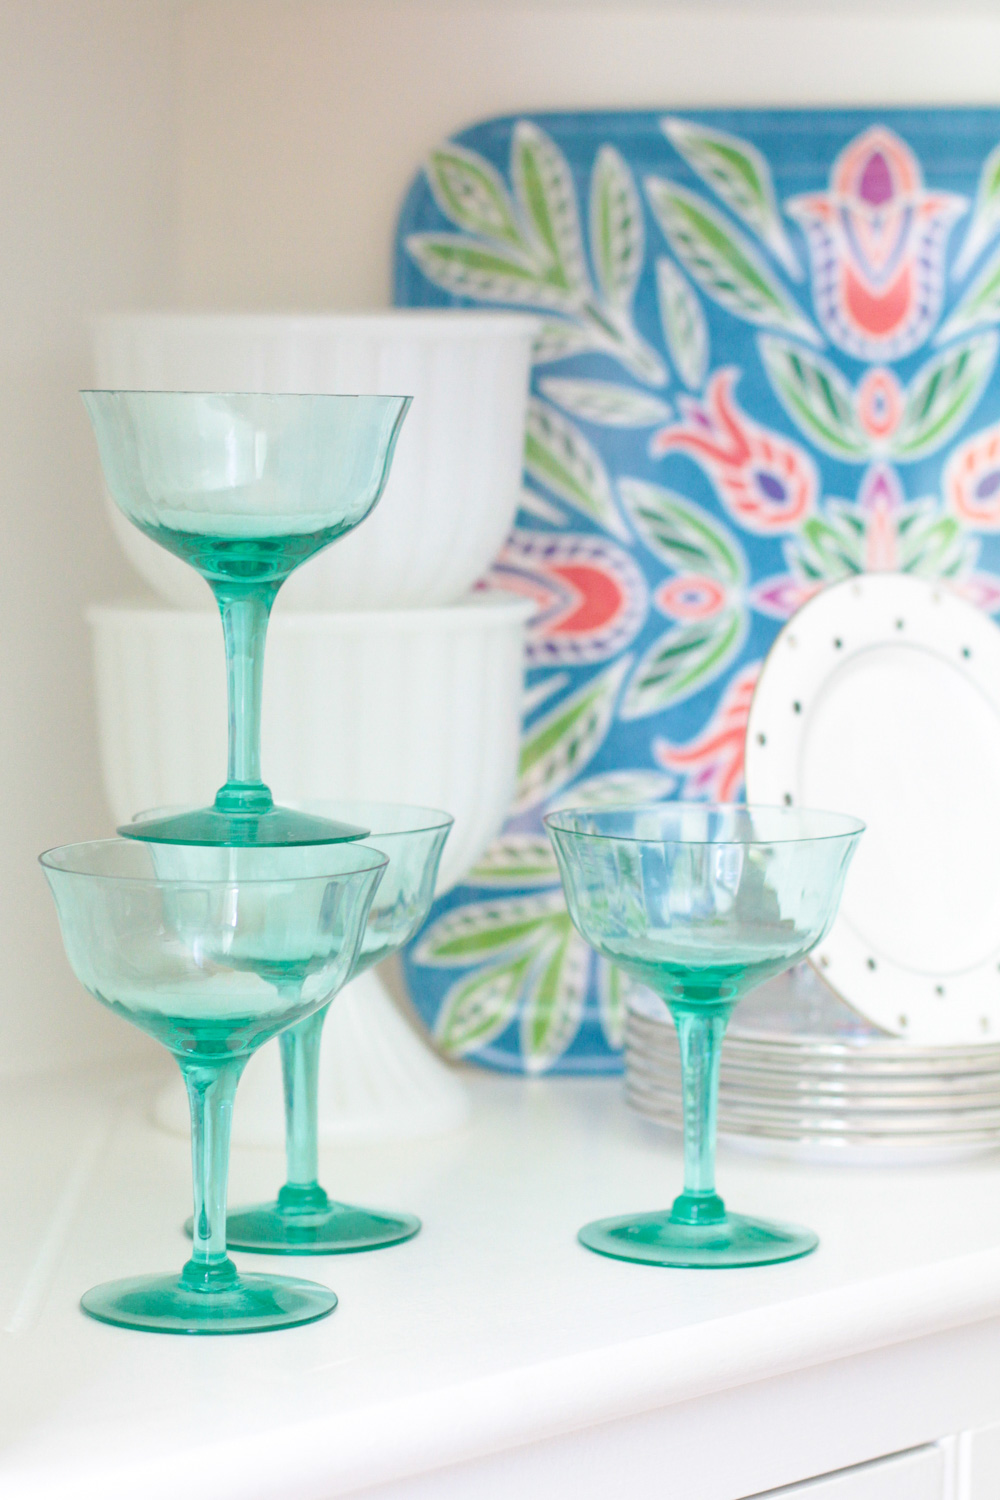 Green Champagne Flutes and Dotted Kate Spade Dessert Plates